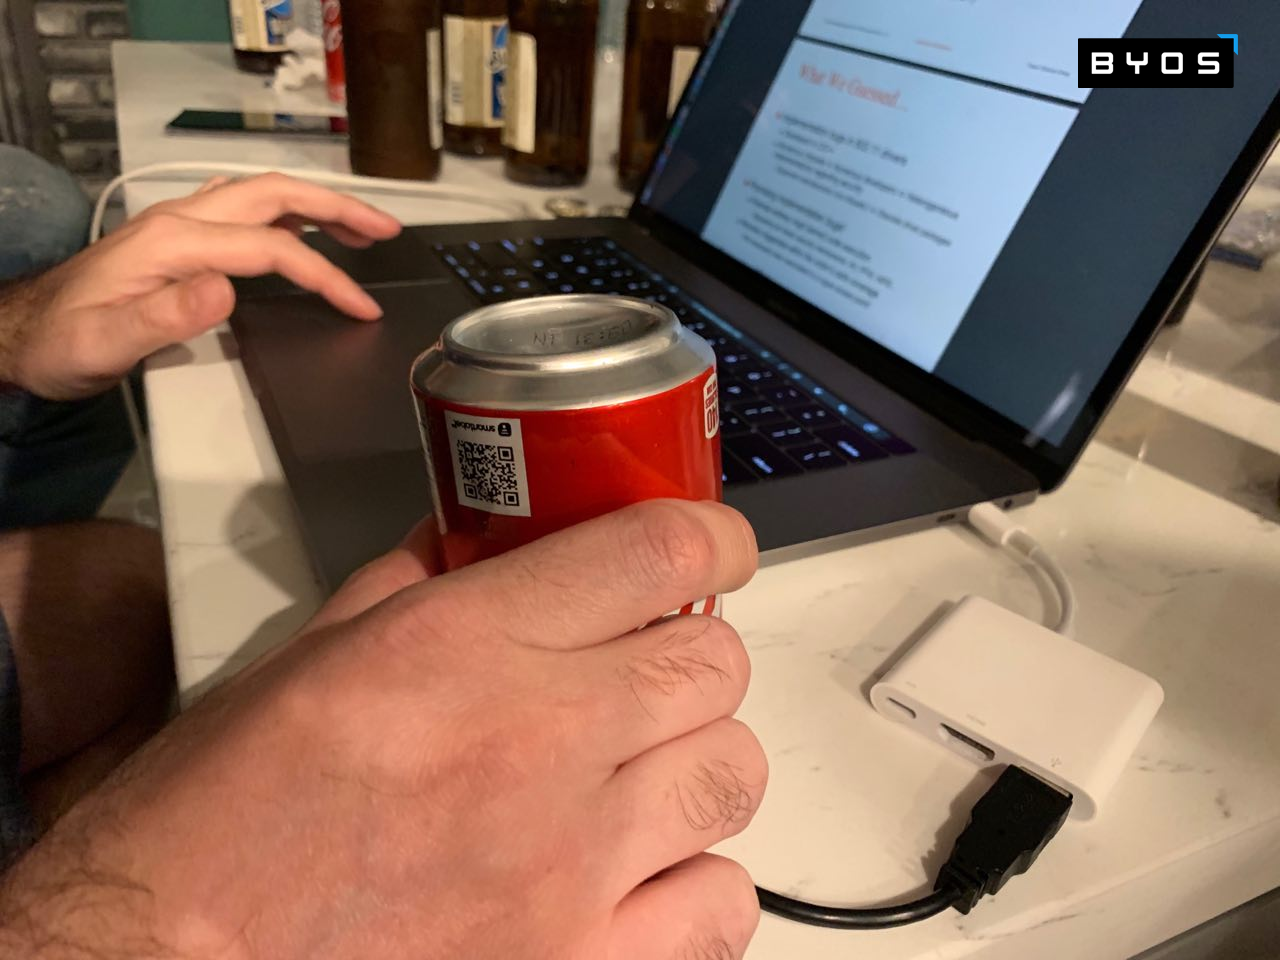 Then they got creative by using a Coke can to try to disrupt the Wi-Fi signal processing of the Portable Secure Gateway.